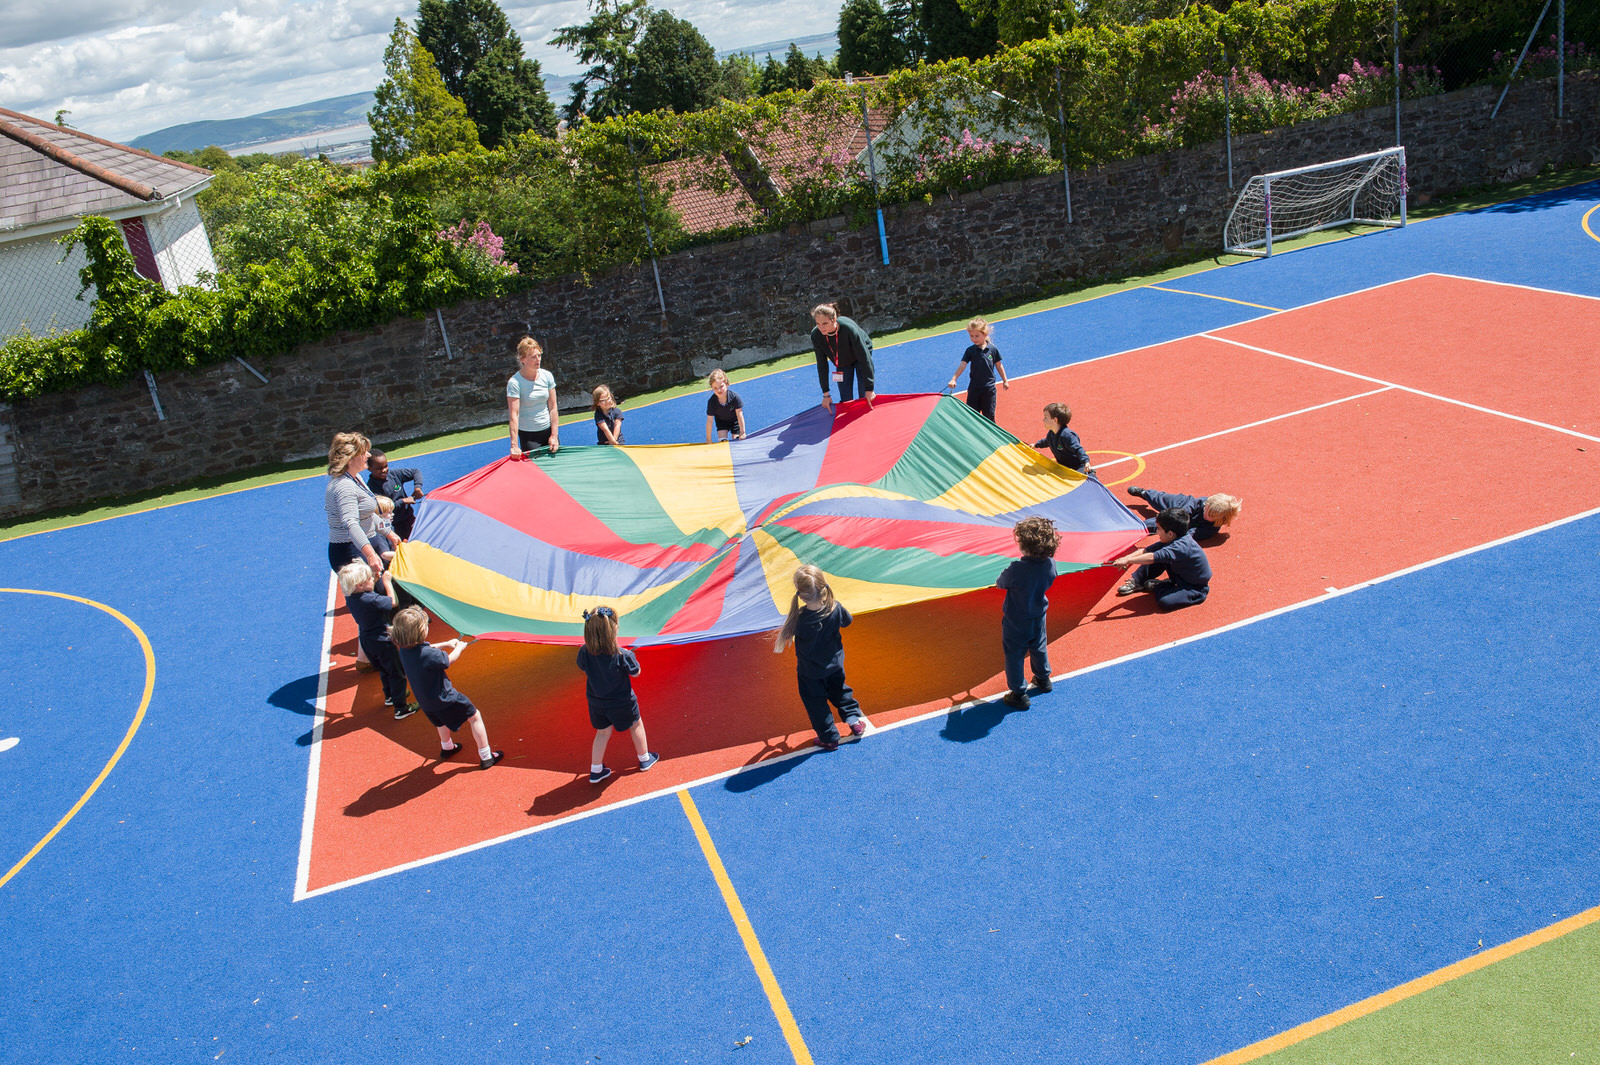 Building academic foundations through play